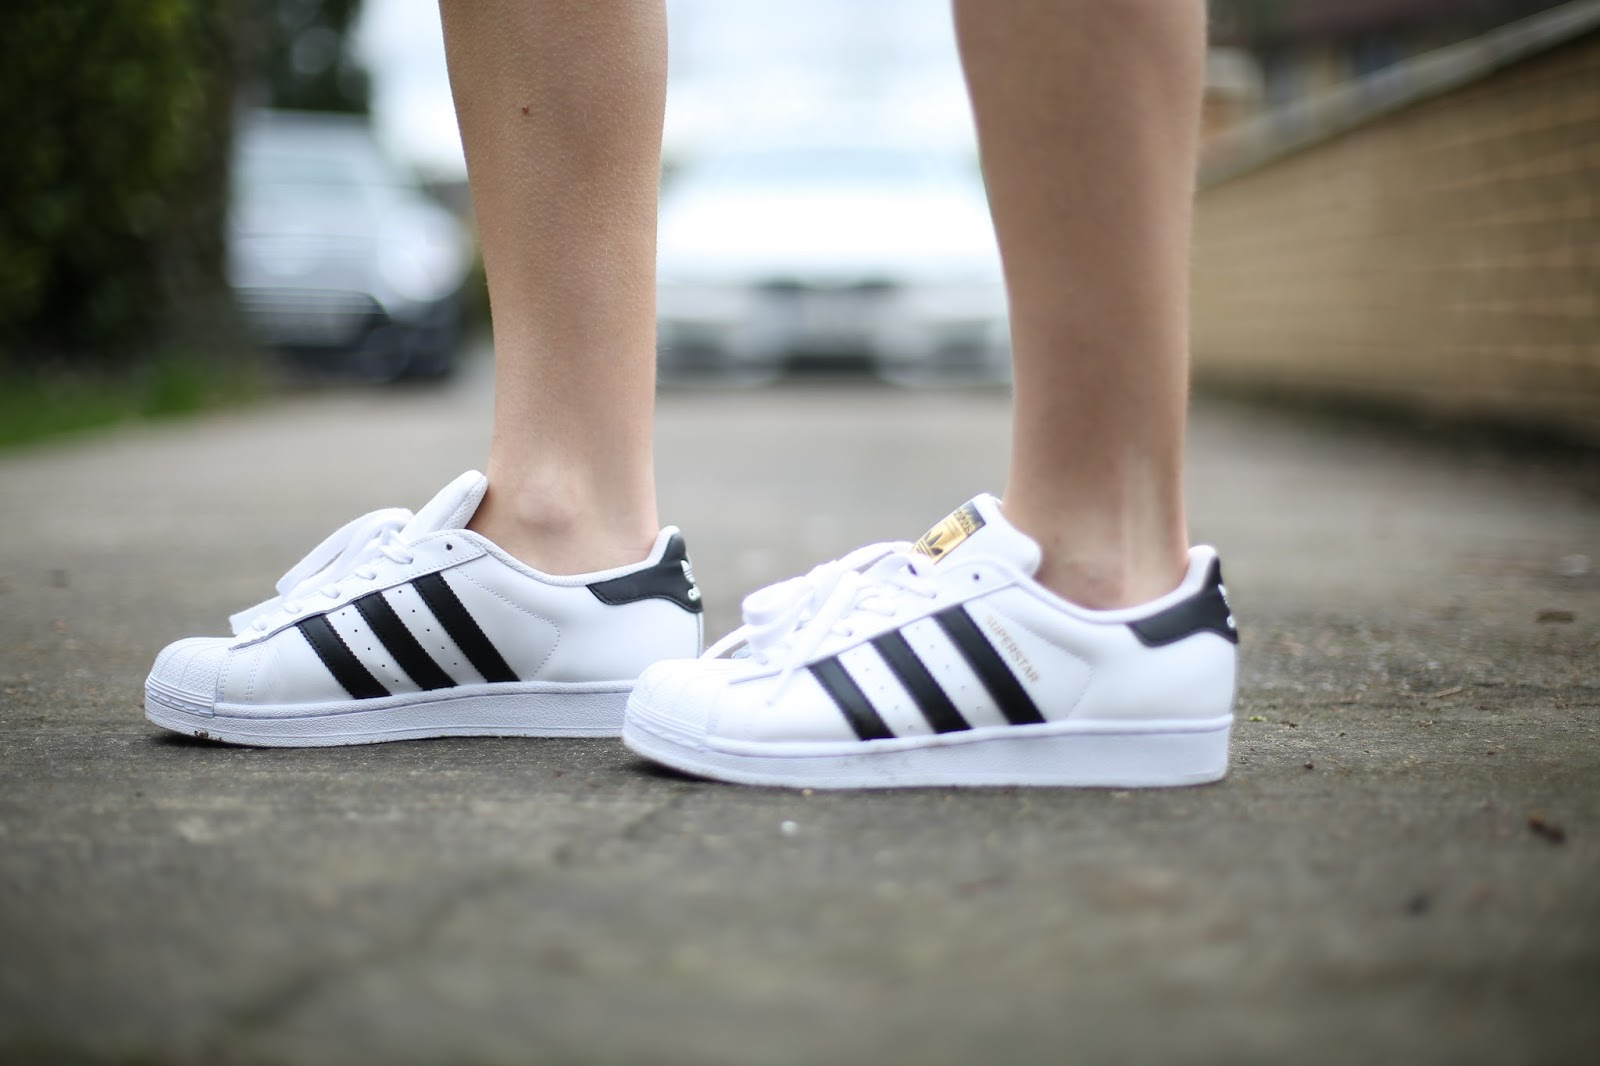 Adidas black and white superstar